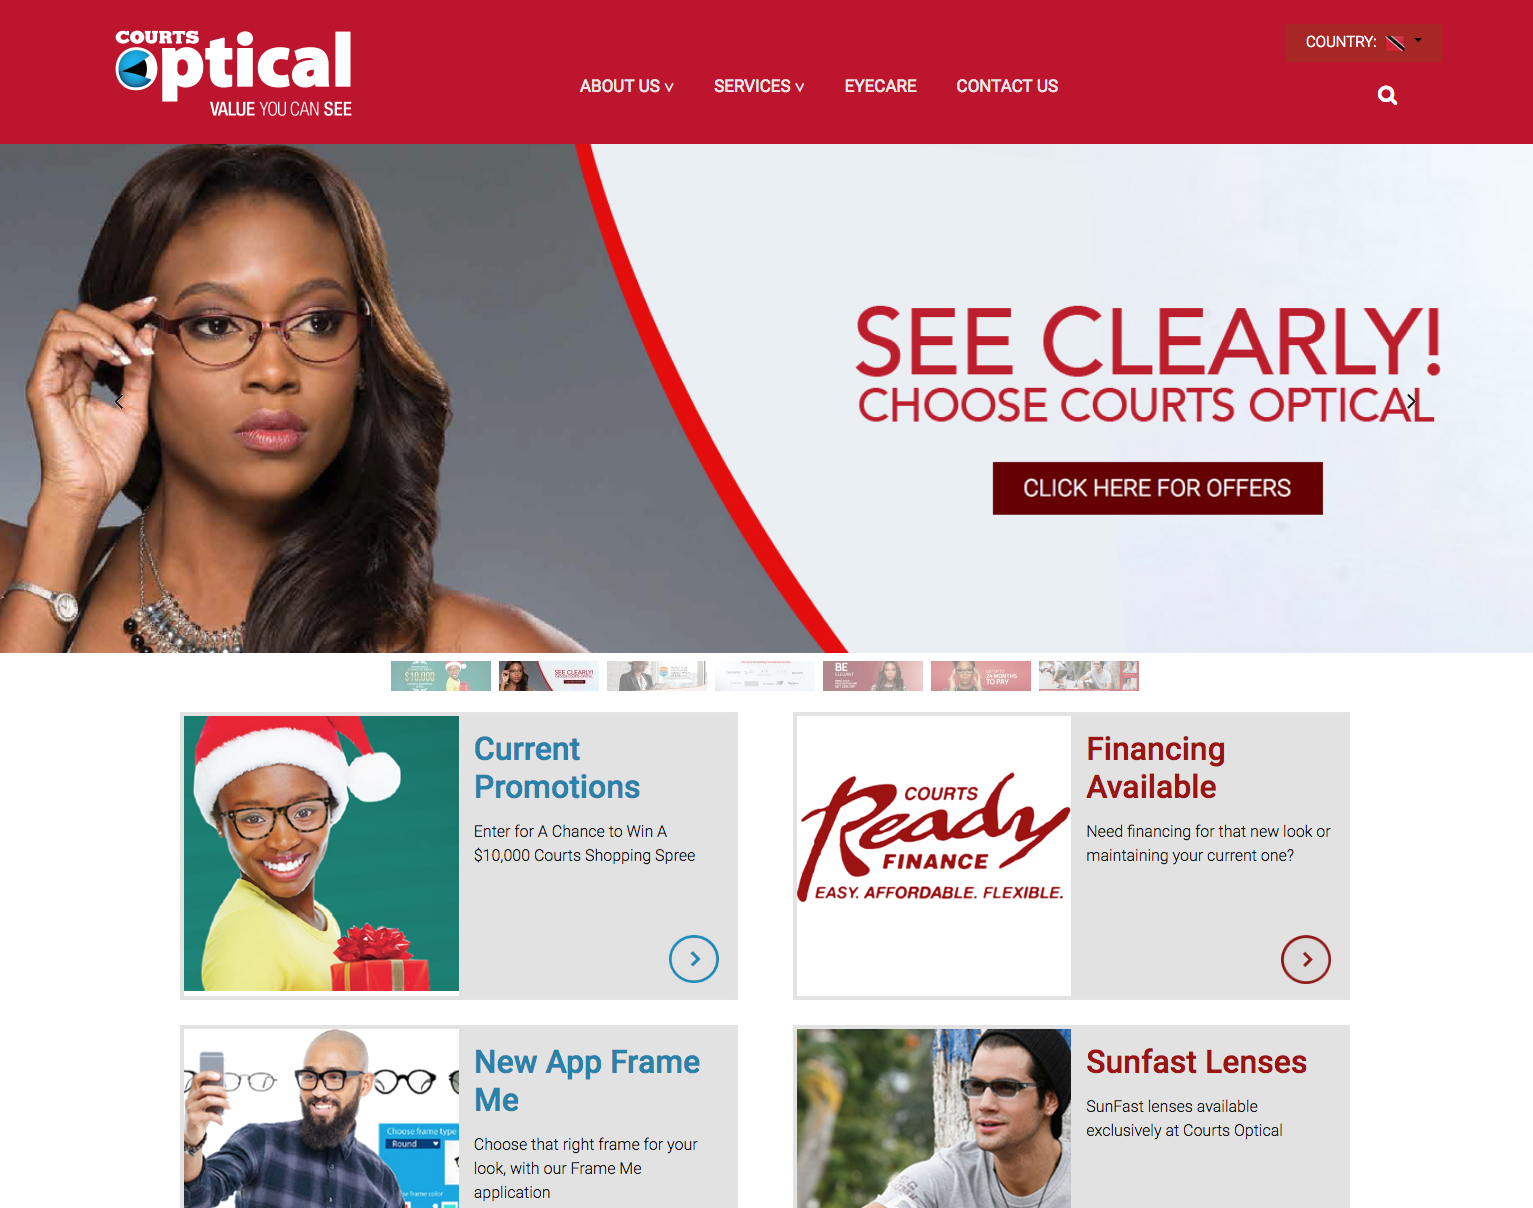 Courts Optical